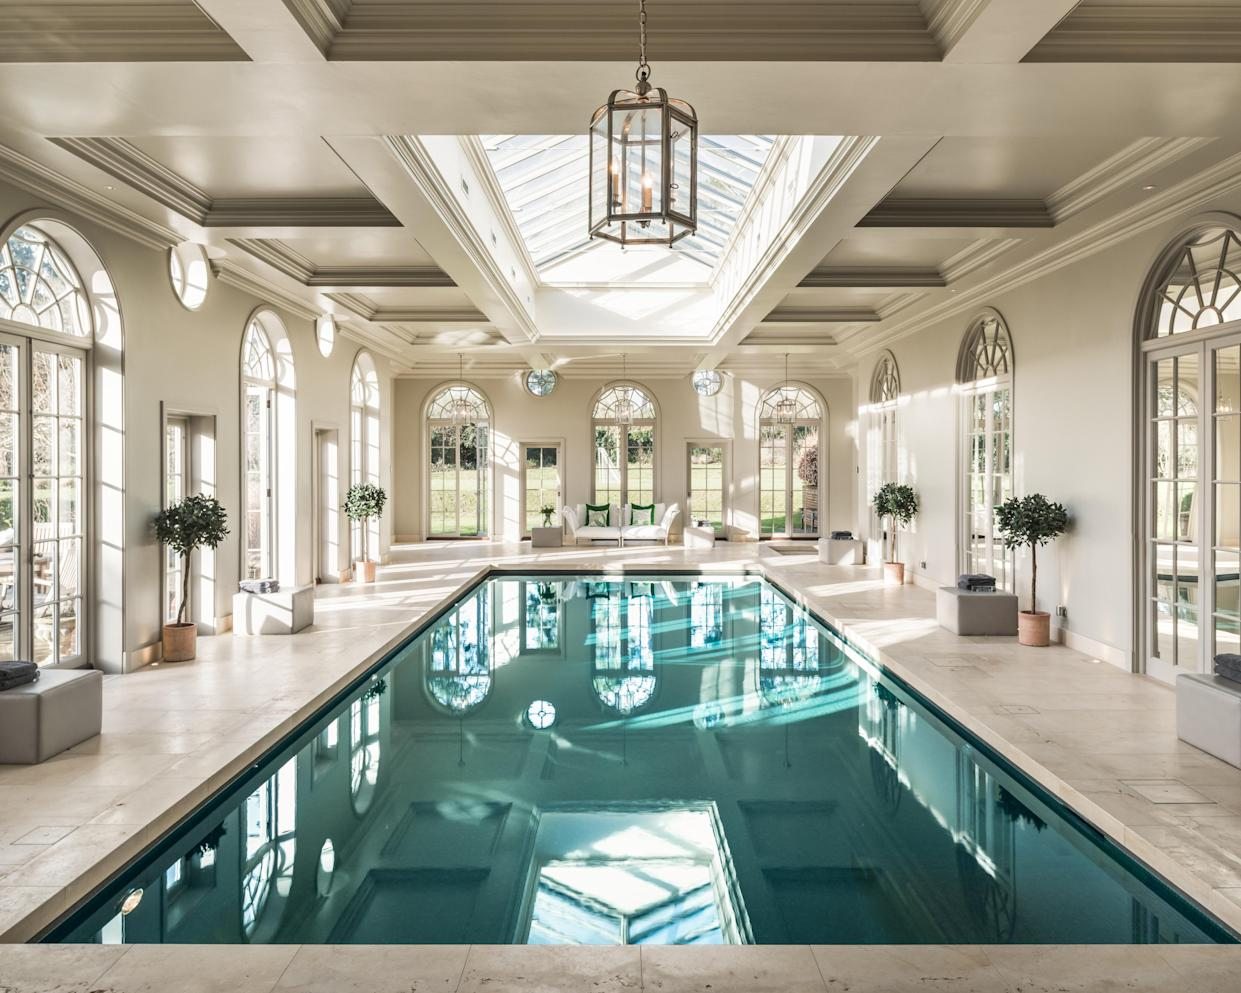 The palatial indoor heated pool at Ariabelle, West Sussex. (Mark Watts photography)